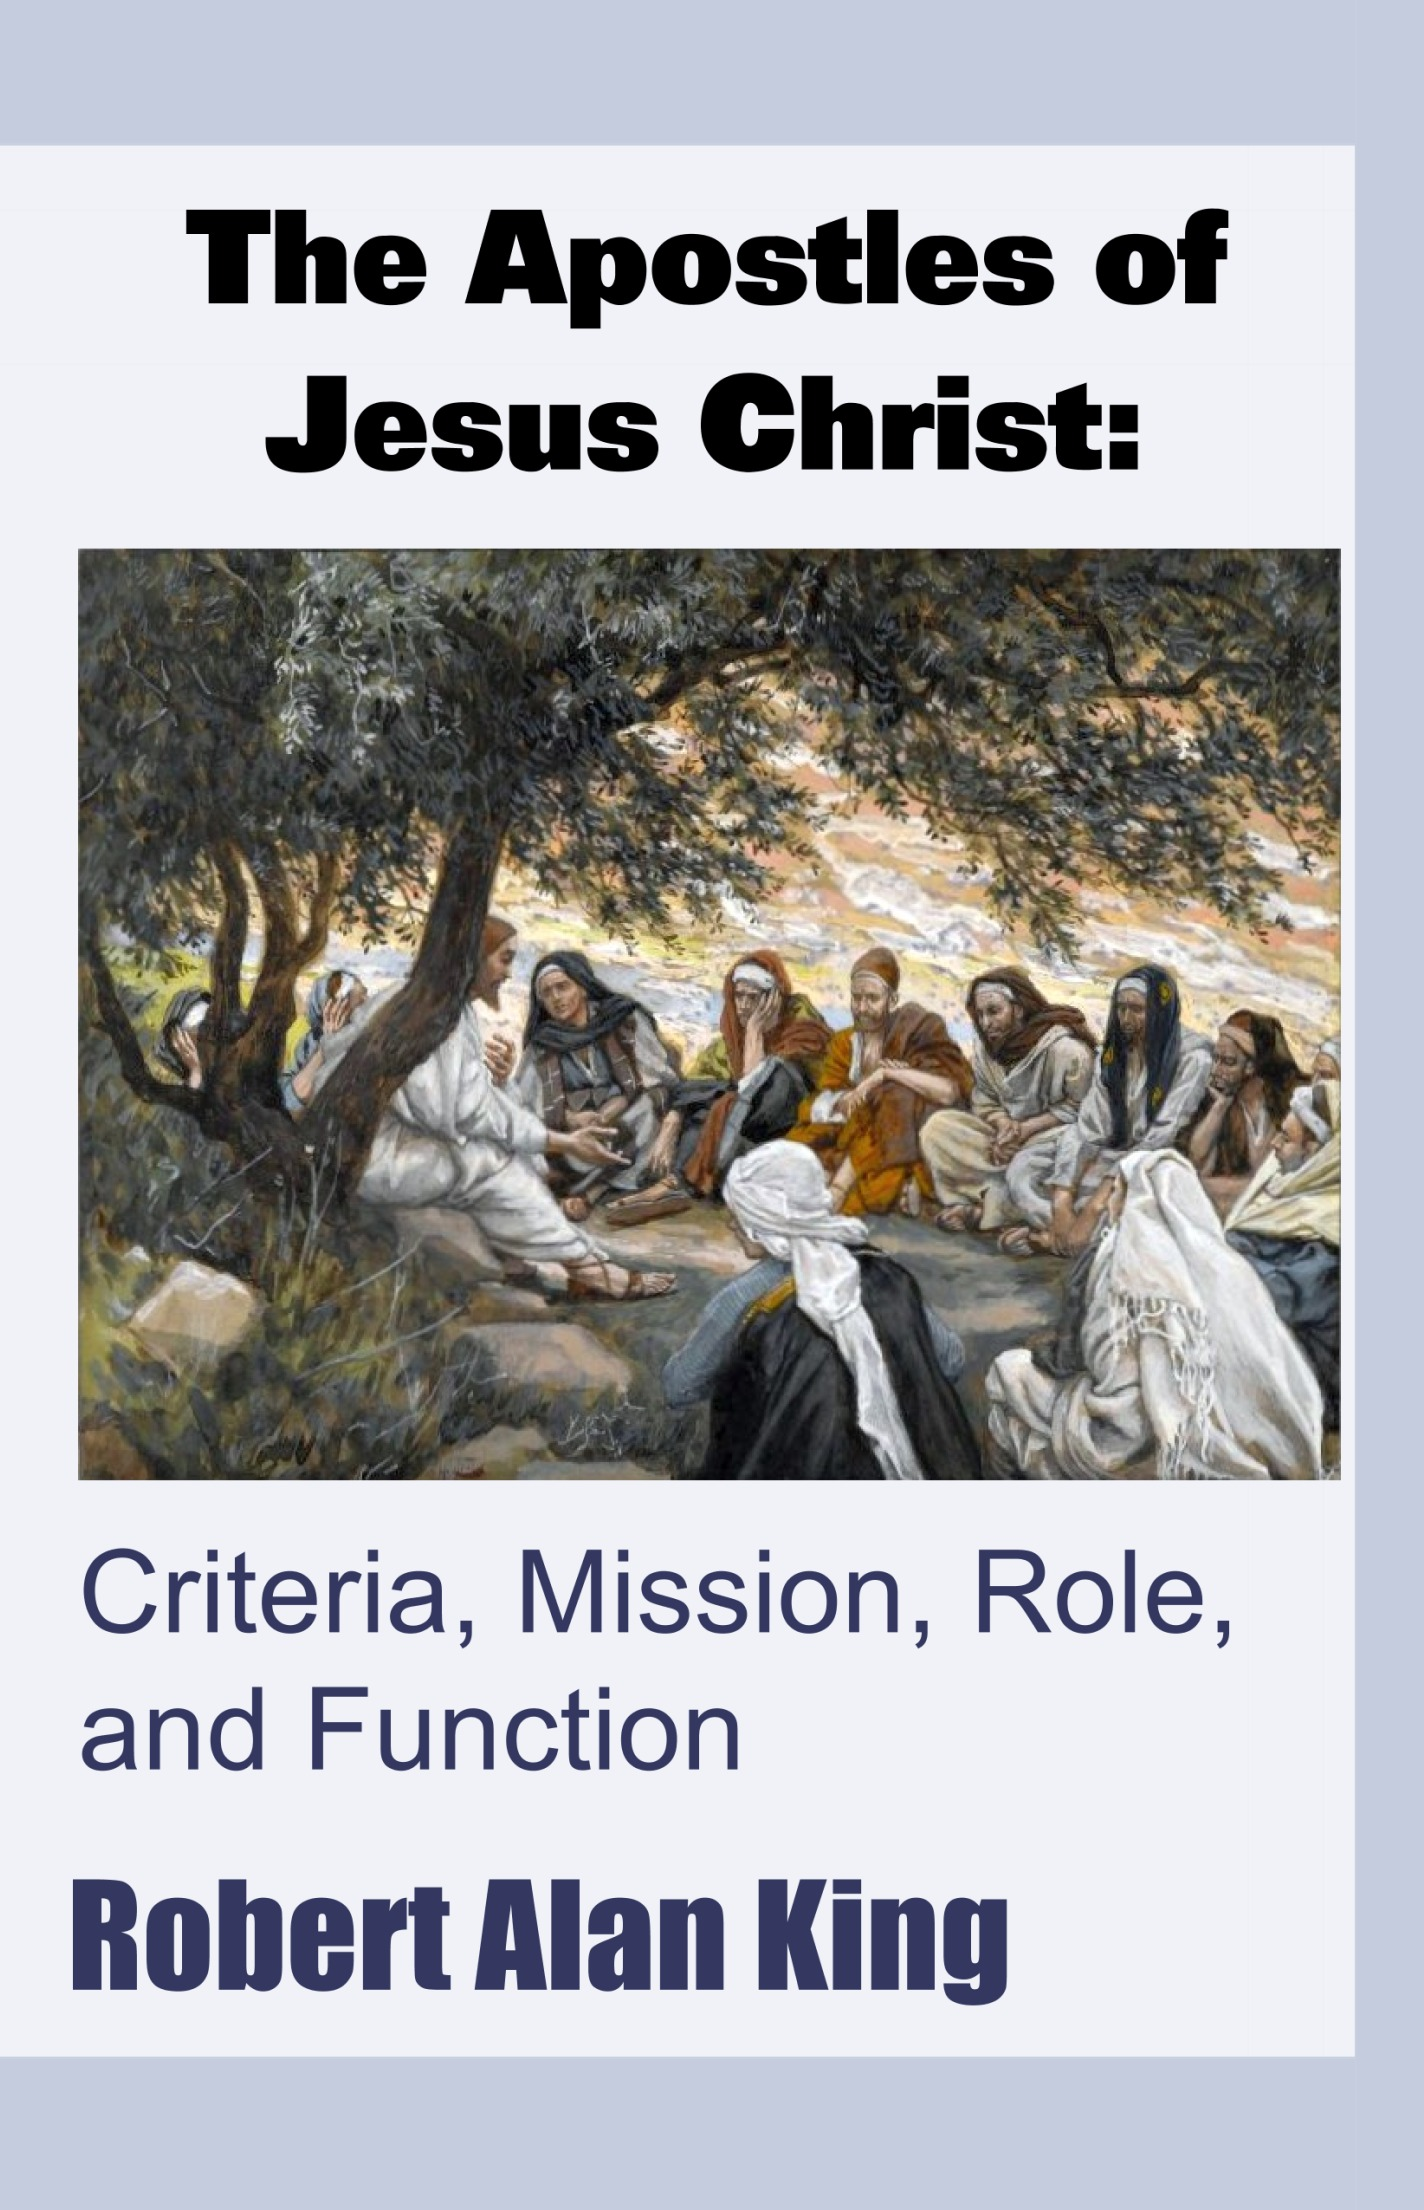 The Apostles of Jesus Christ: Criteria, Mission, Role, and Function